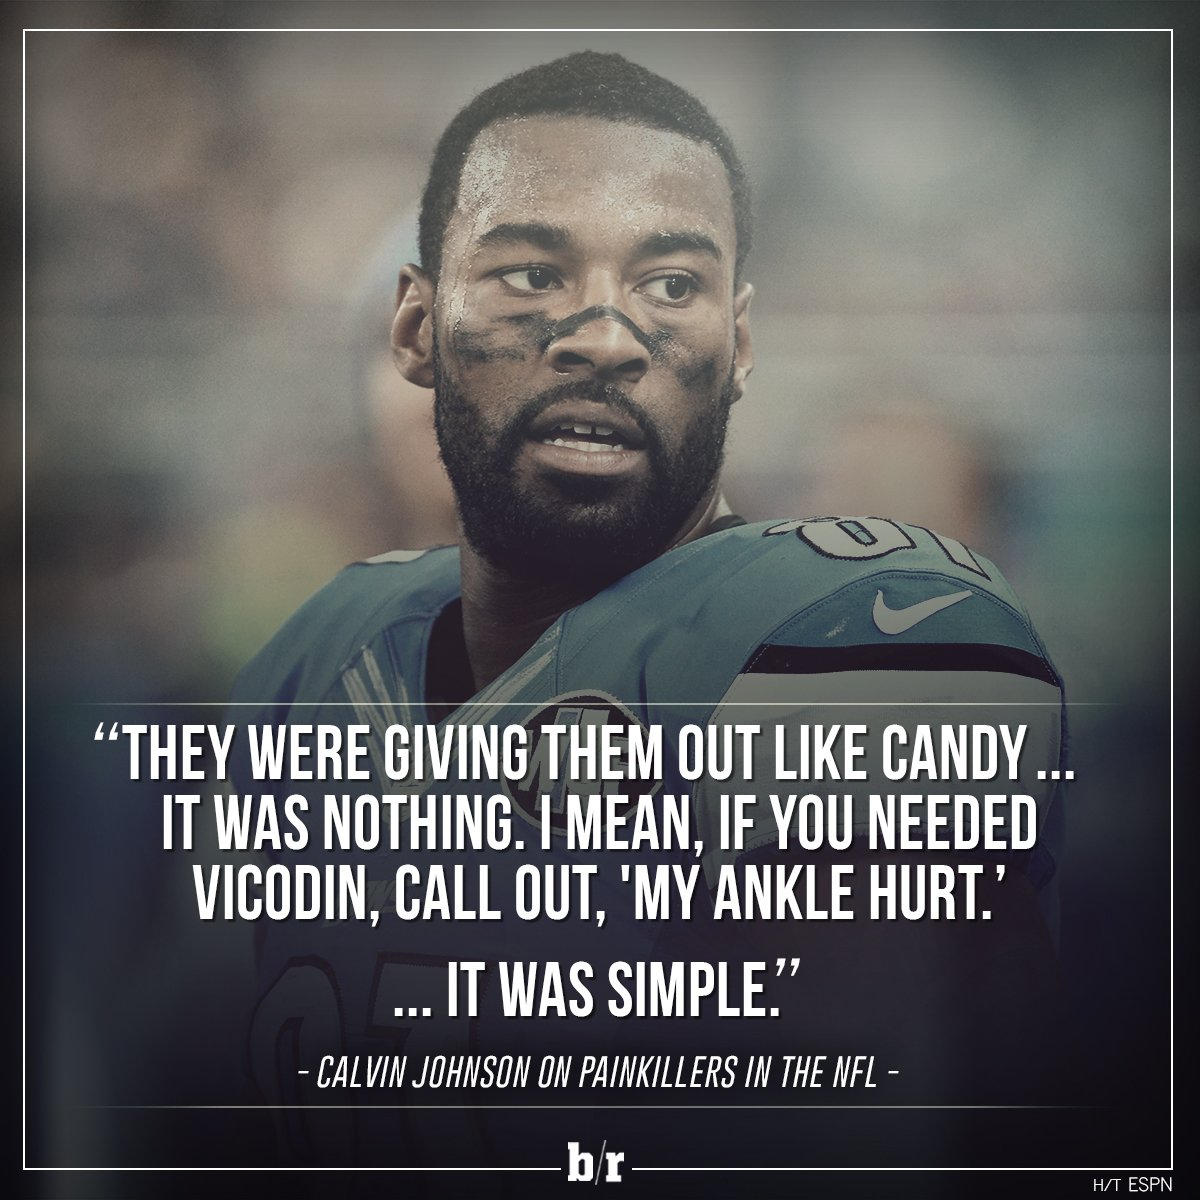 Calvin Johnson keeps it real about painkillers in the NFL https://t.co/Aa1NwMiRoi